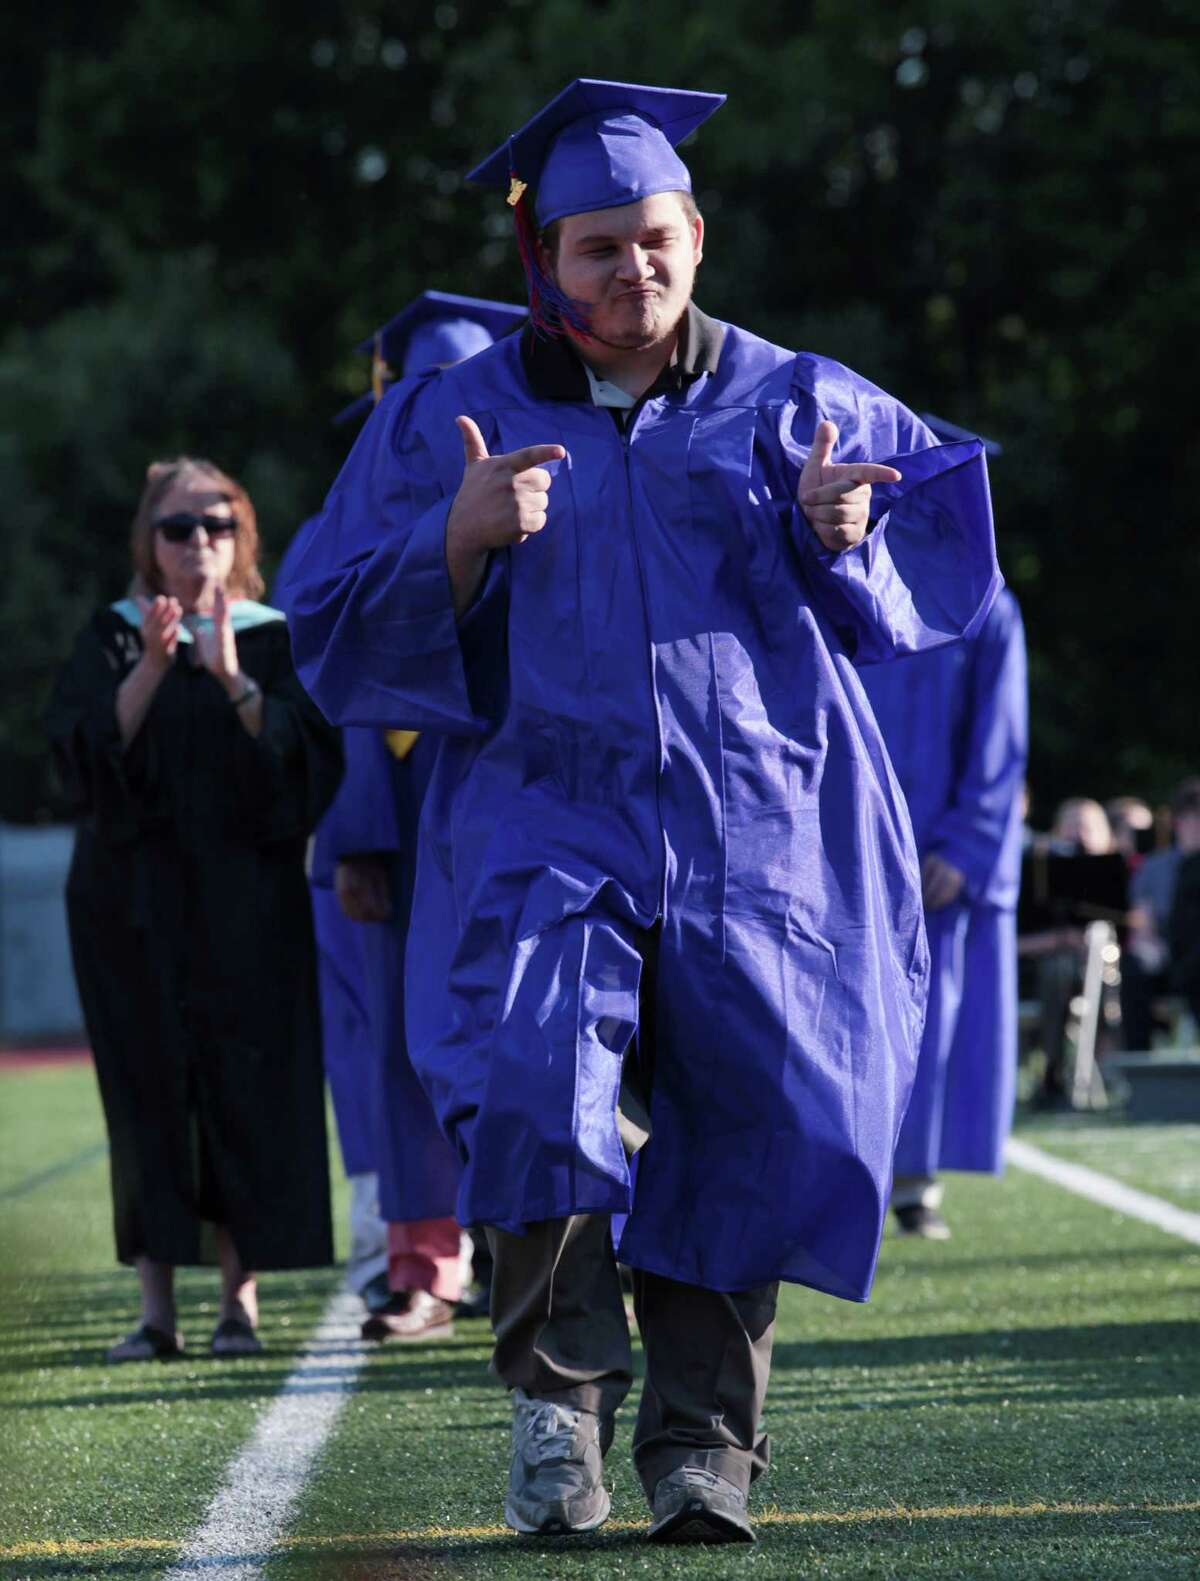 Hunter Quaid Stanford reacts before receiving his diploma at the Joseph A. Foran High School graduation ceremony in Milford, Conn. on Thursday, June 9, 2016.